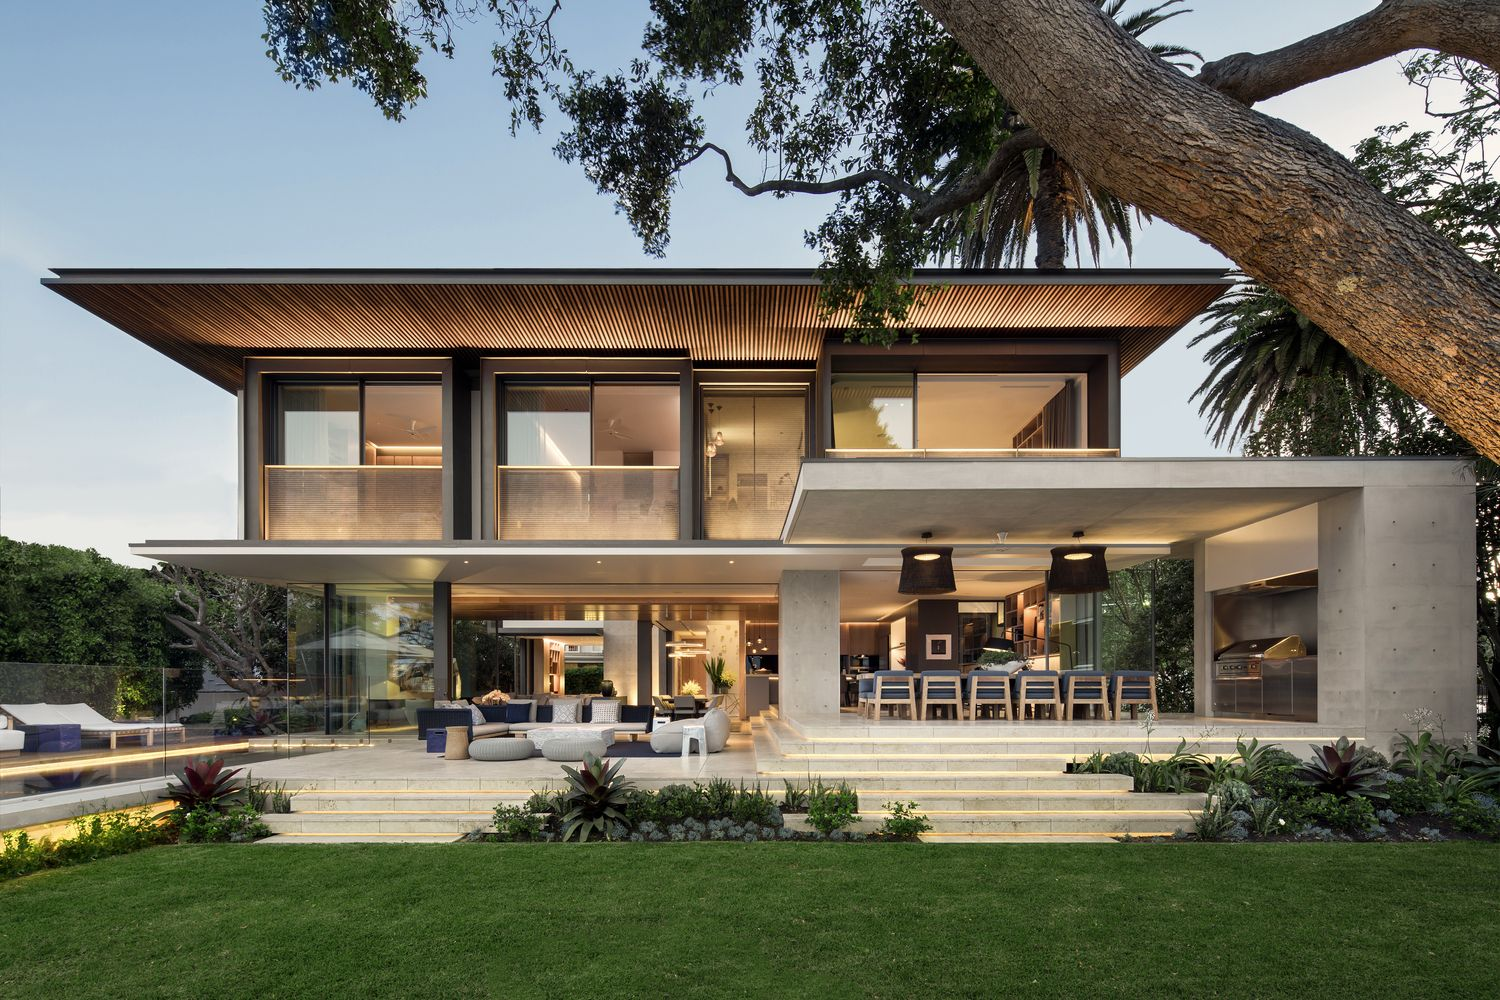 Gallery Of The 50 Most Inspiring Architecture Photographs Of 2018 33 In 2020 Cool House Designs Architecture House Facade House